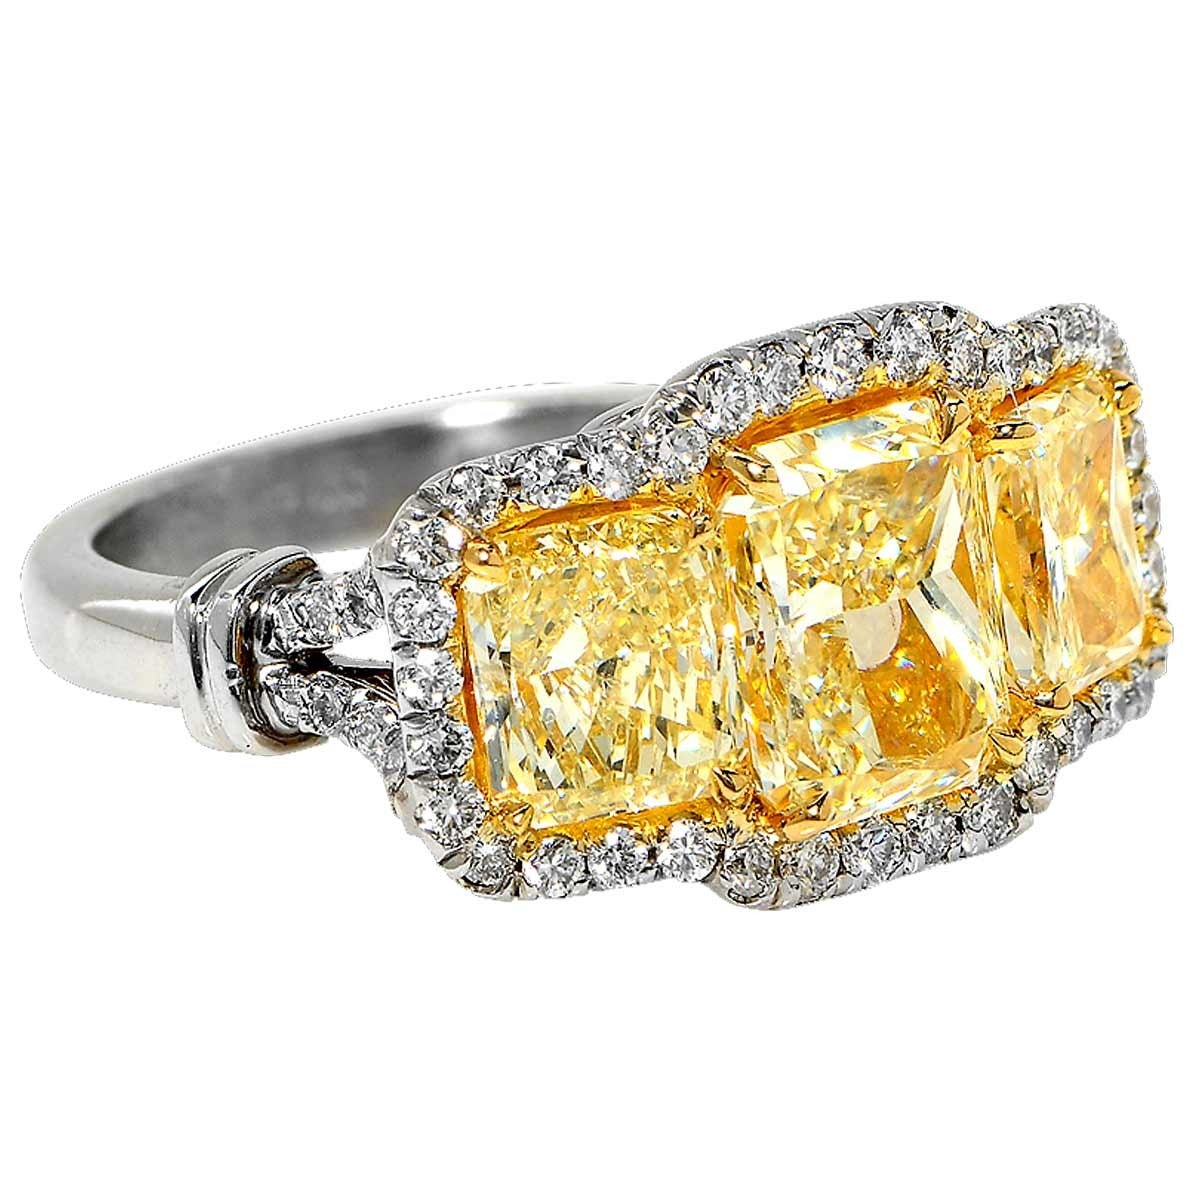 Platinum 5ct Fancy Yellow Diamond Ring Featuring Three Fancy Yellow Diamonds with an Estimated Total Weight of 4ct and 52 Round Brilliant Cut Diamonds with an Estimated Weight of 1ct.